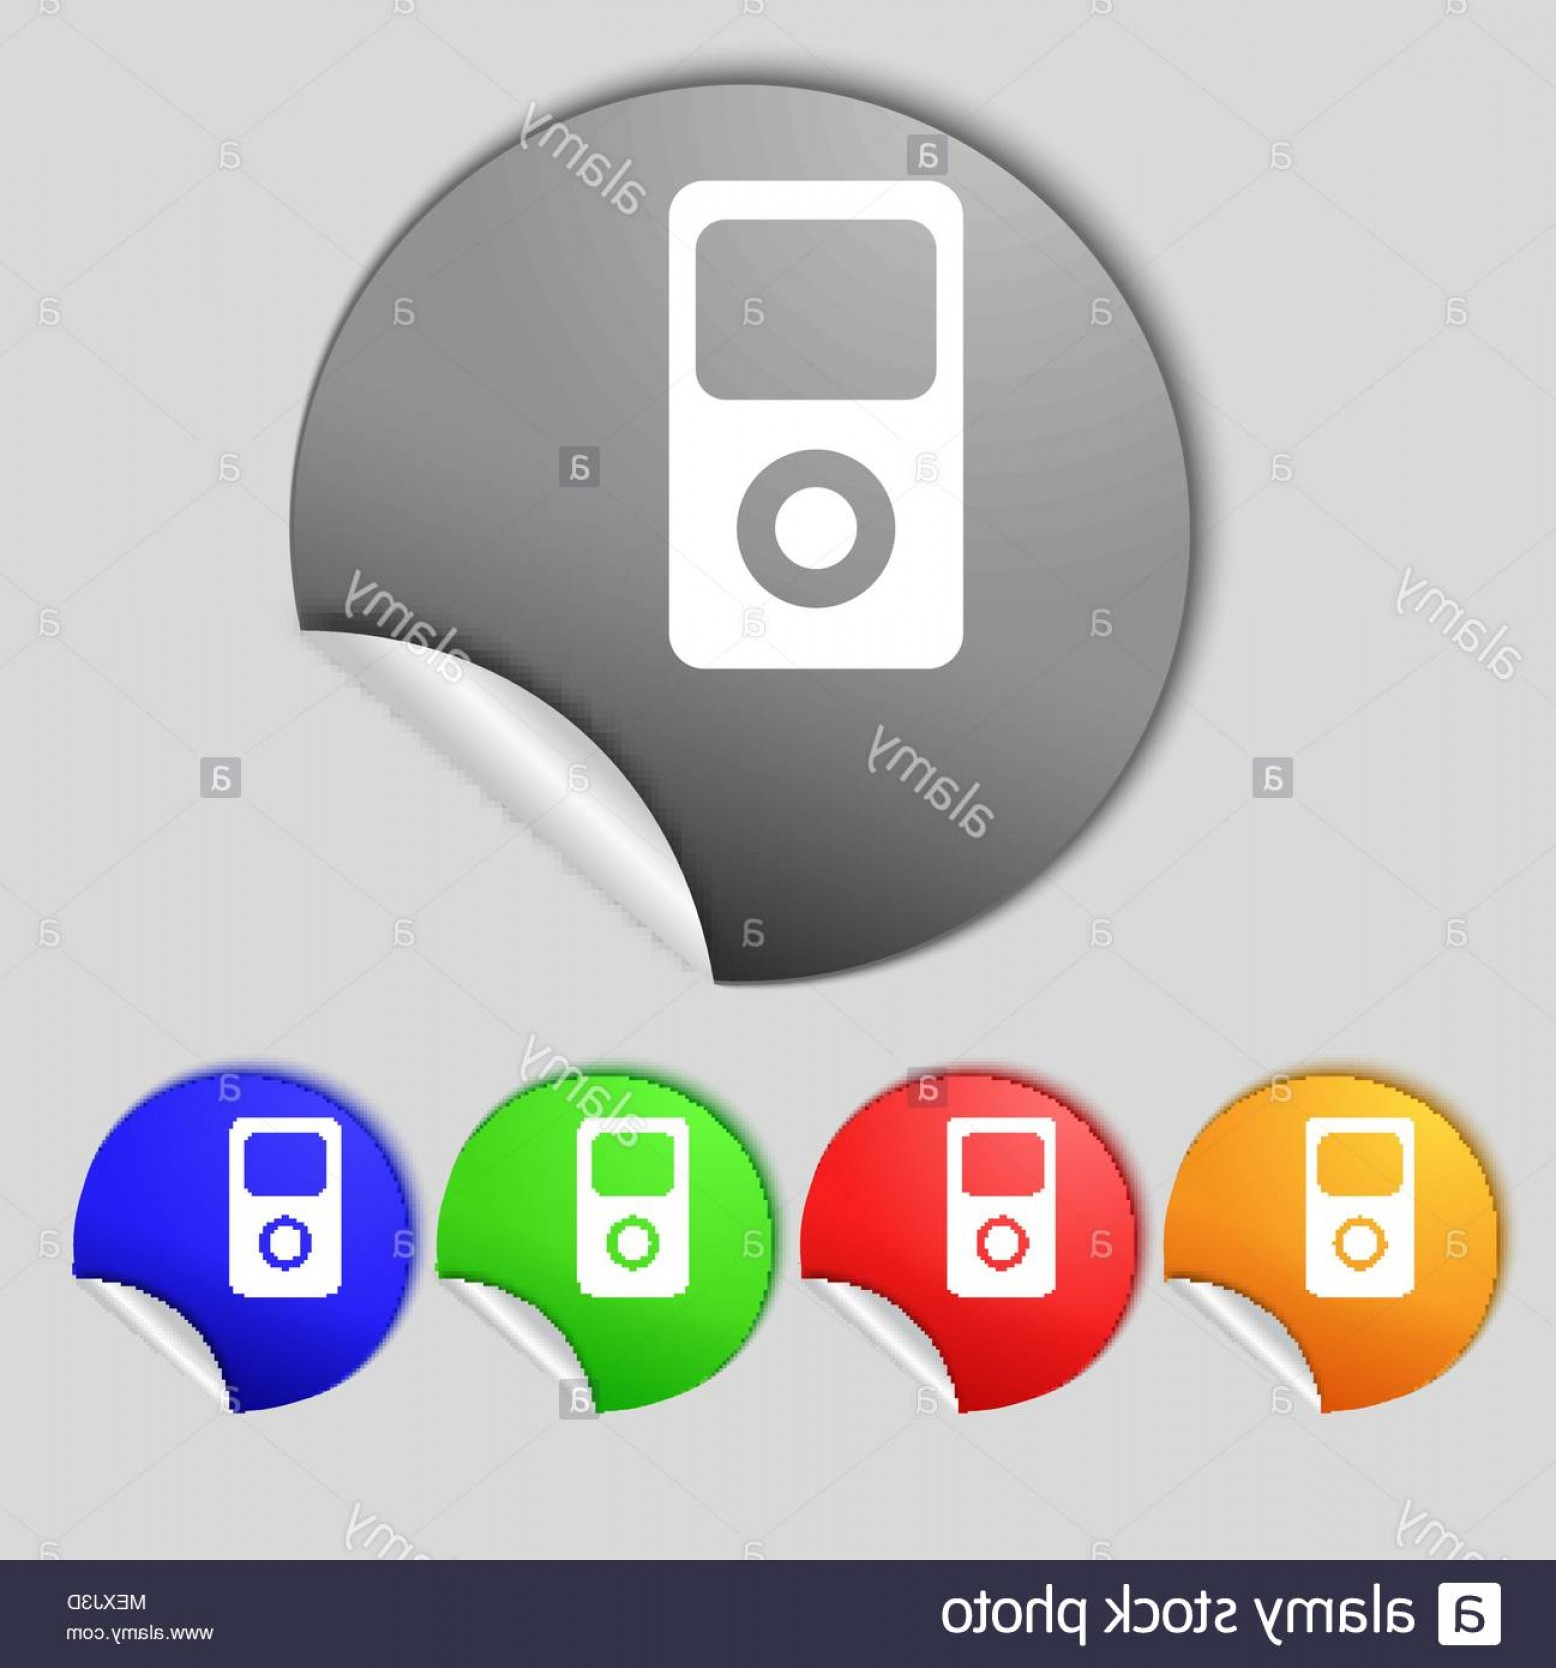 Buttons Vector Art: Portable Musical Player Icon Set Colur Buttons Vector Illustration Image